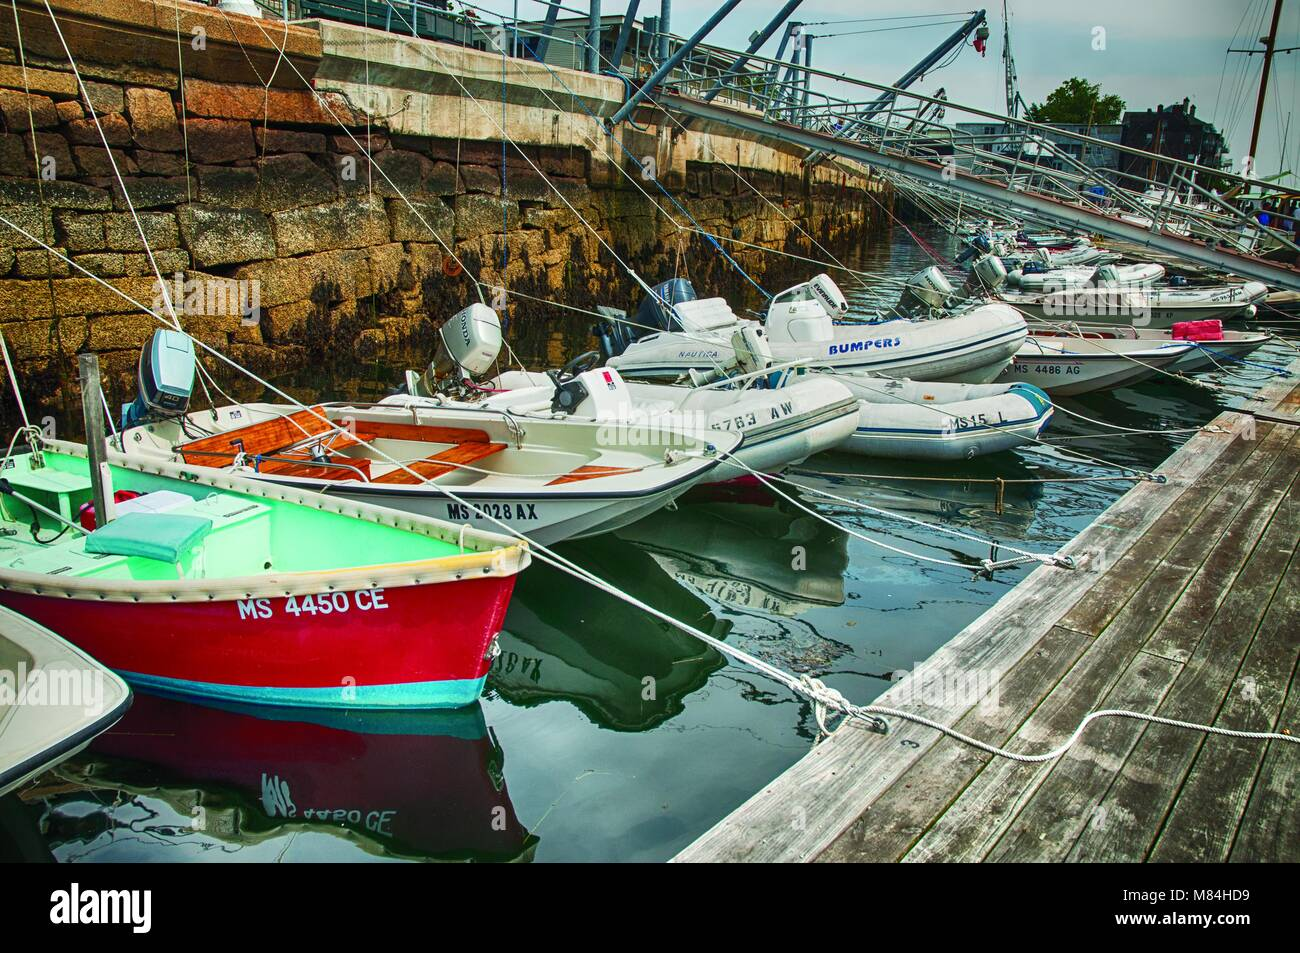 Small boats tied to dock by ropes for protection. - Stock Image